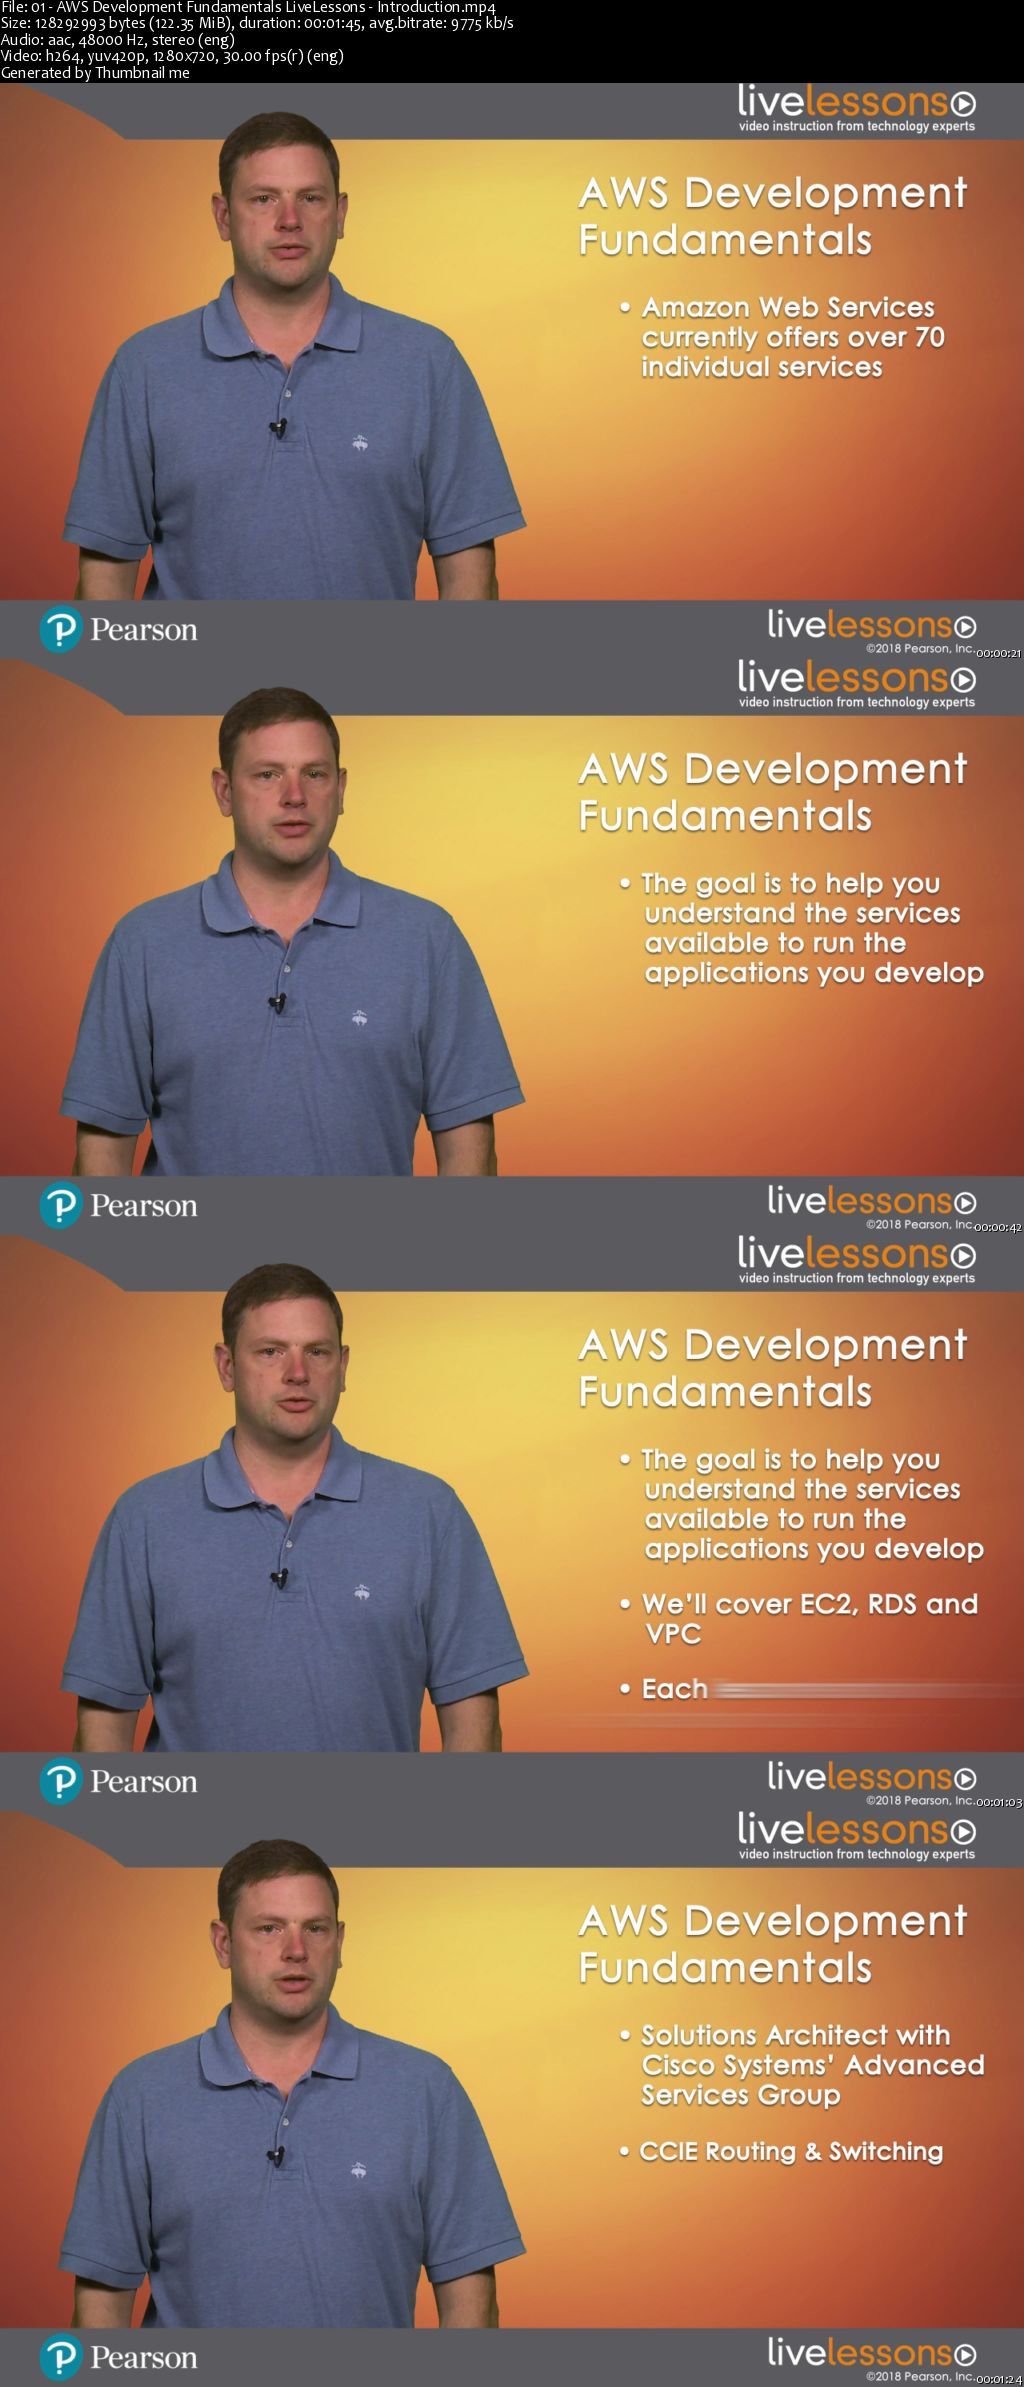 AWS Development Fundamentals